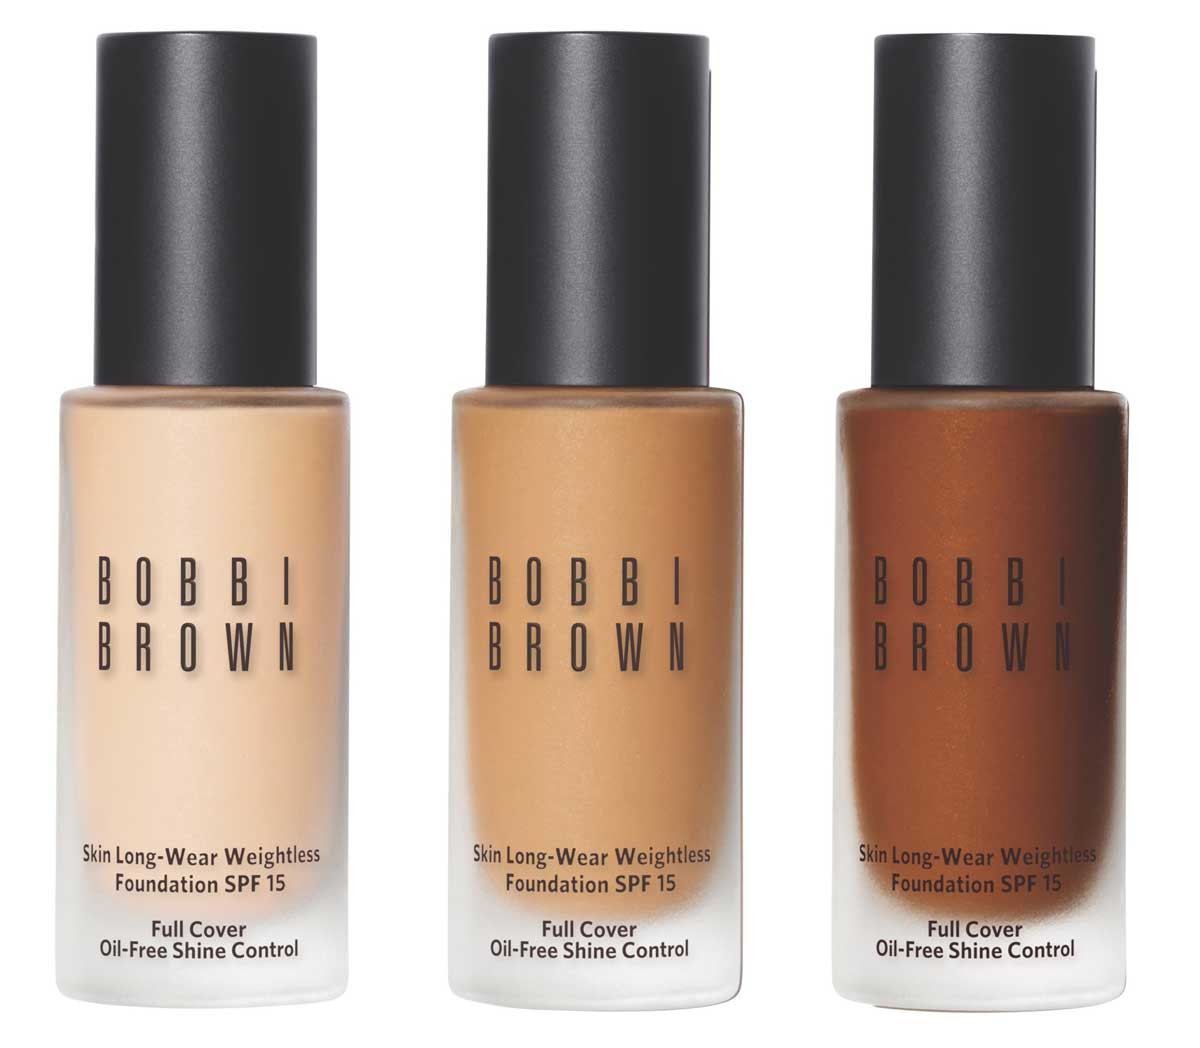 Bobbi Brown Skin Long Wear Weightless Foundation Spf 15